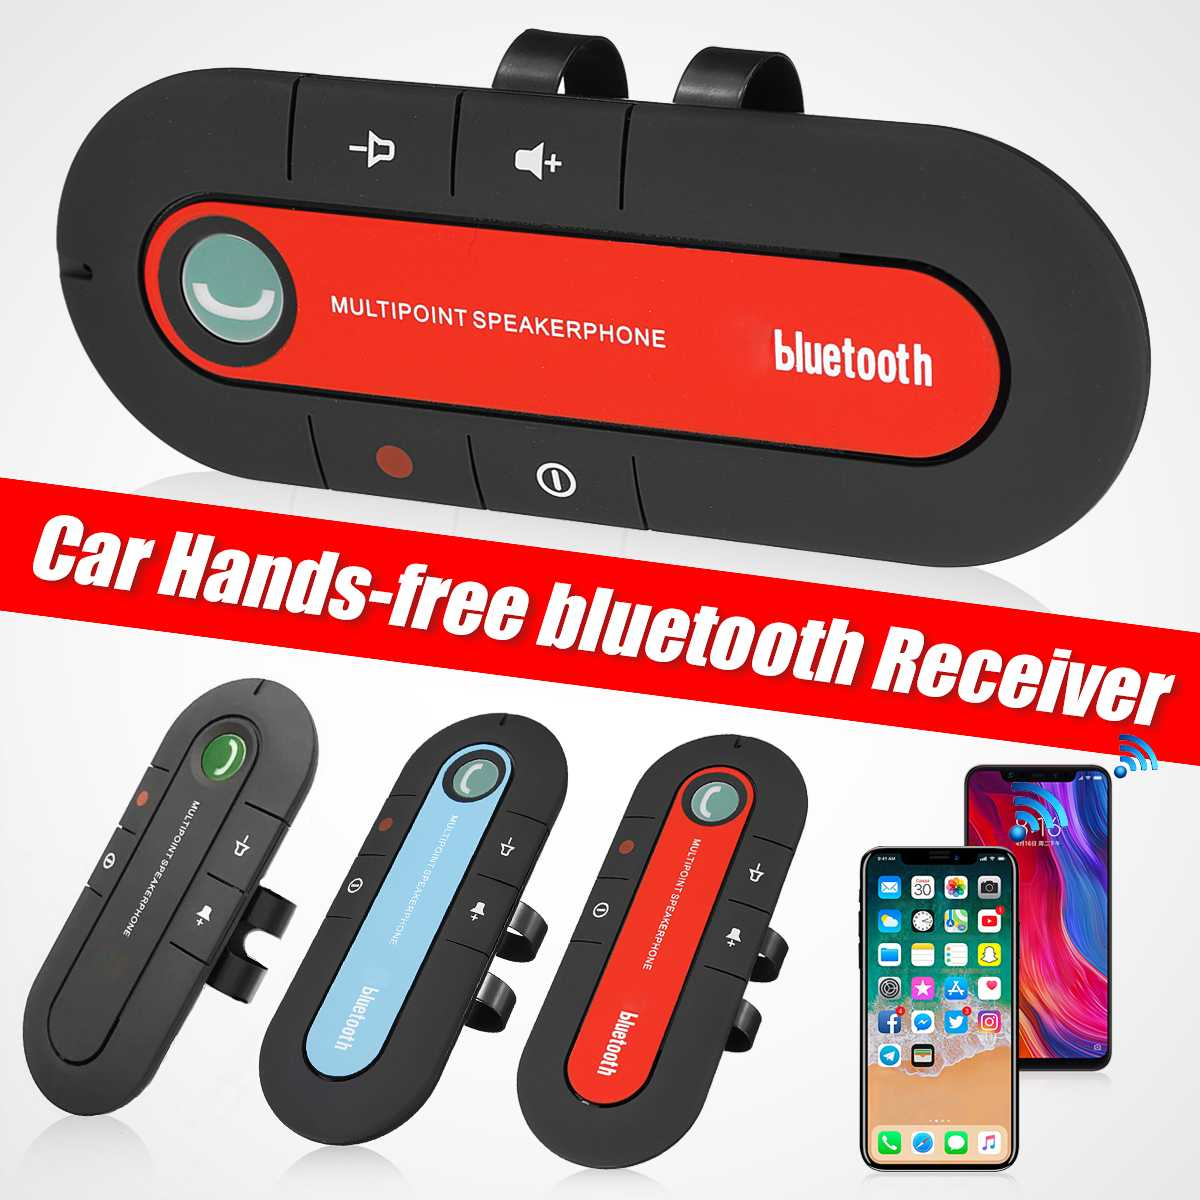 bluetooth Handsfree Car Kit Sun Visor Clip Audio Adapter Wireless Receiver Multipoint Speakerphone Auto Stereo Mp3 Player image